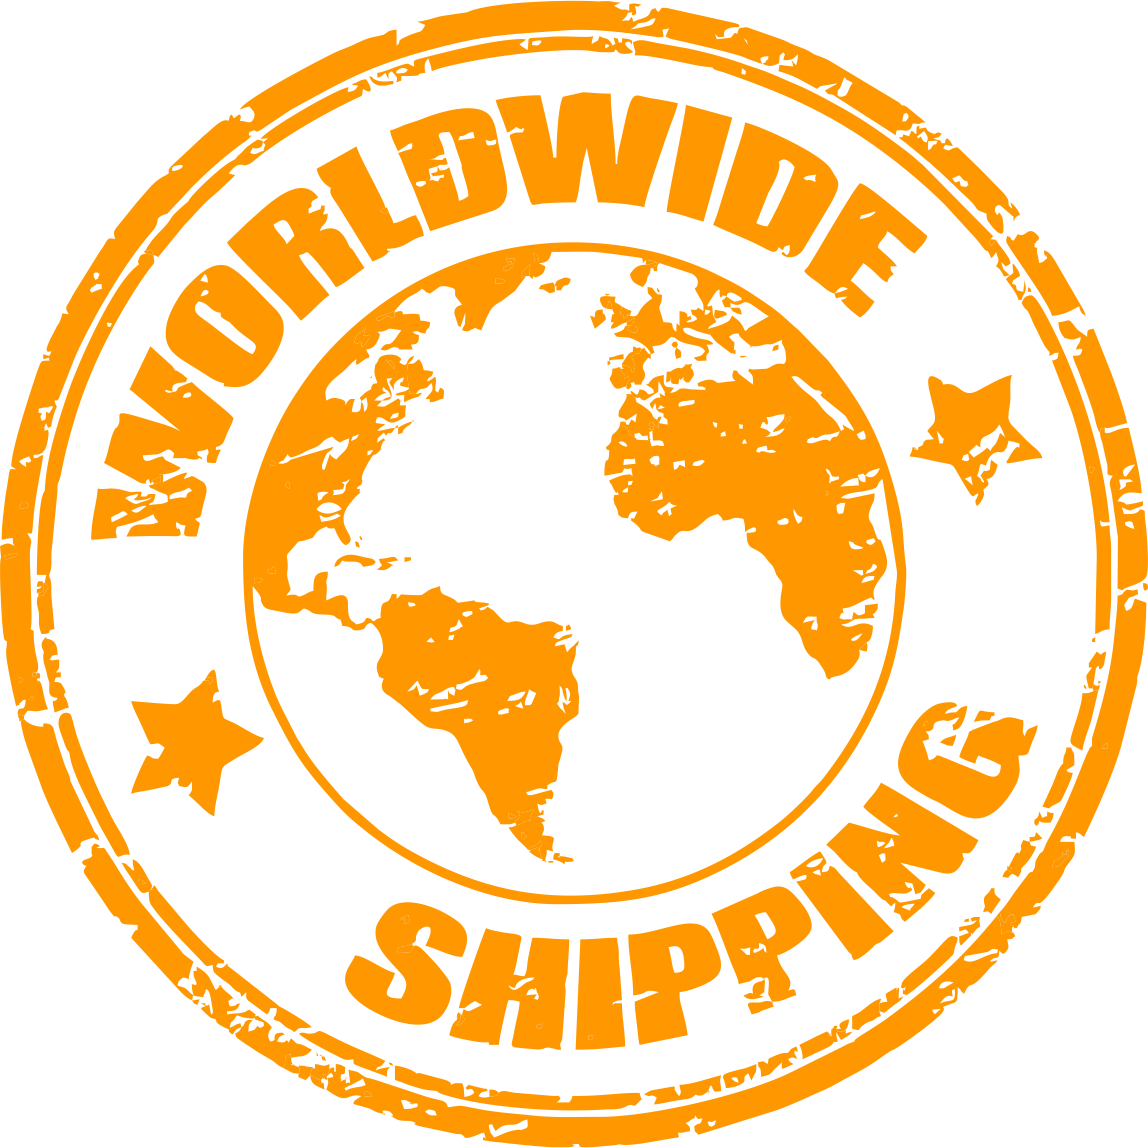 WORLD-WIDE-SHIPPING-grunge